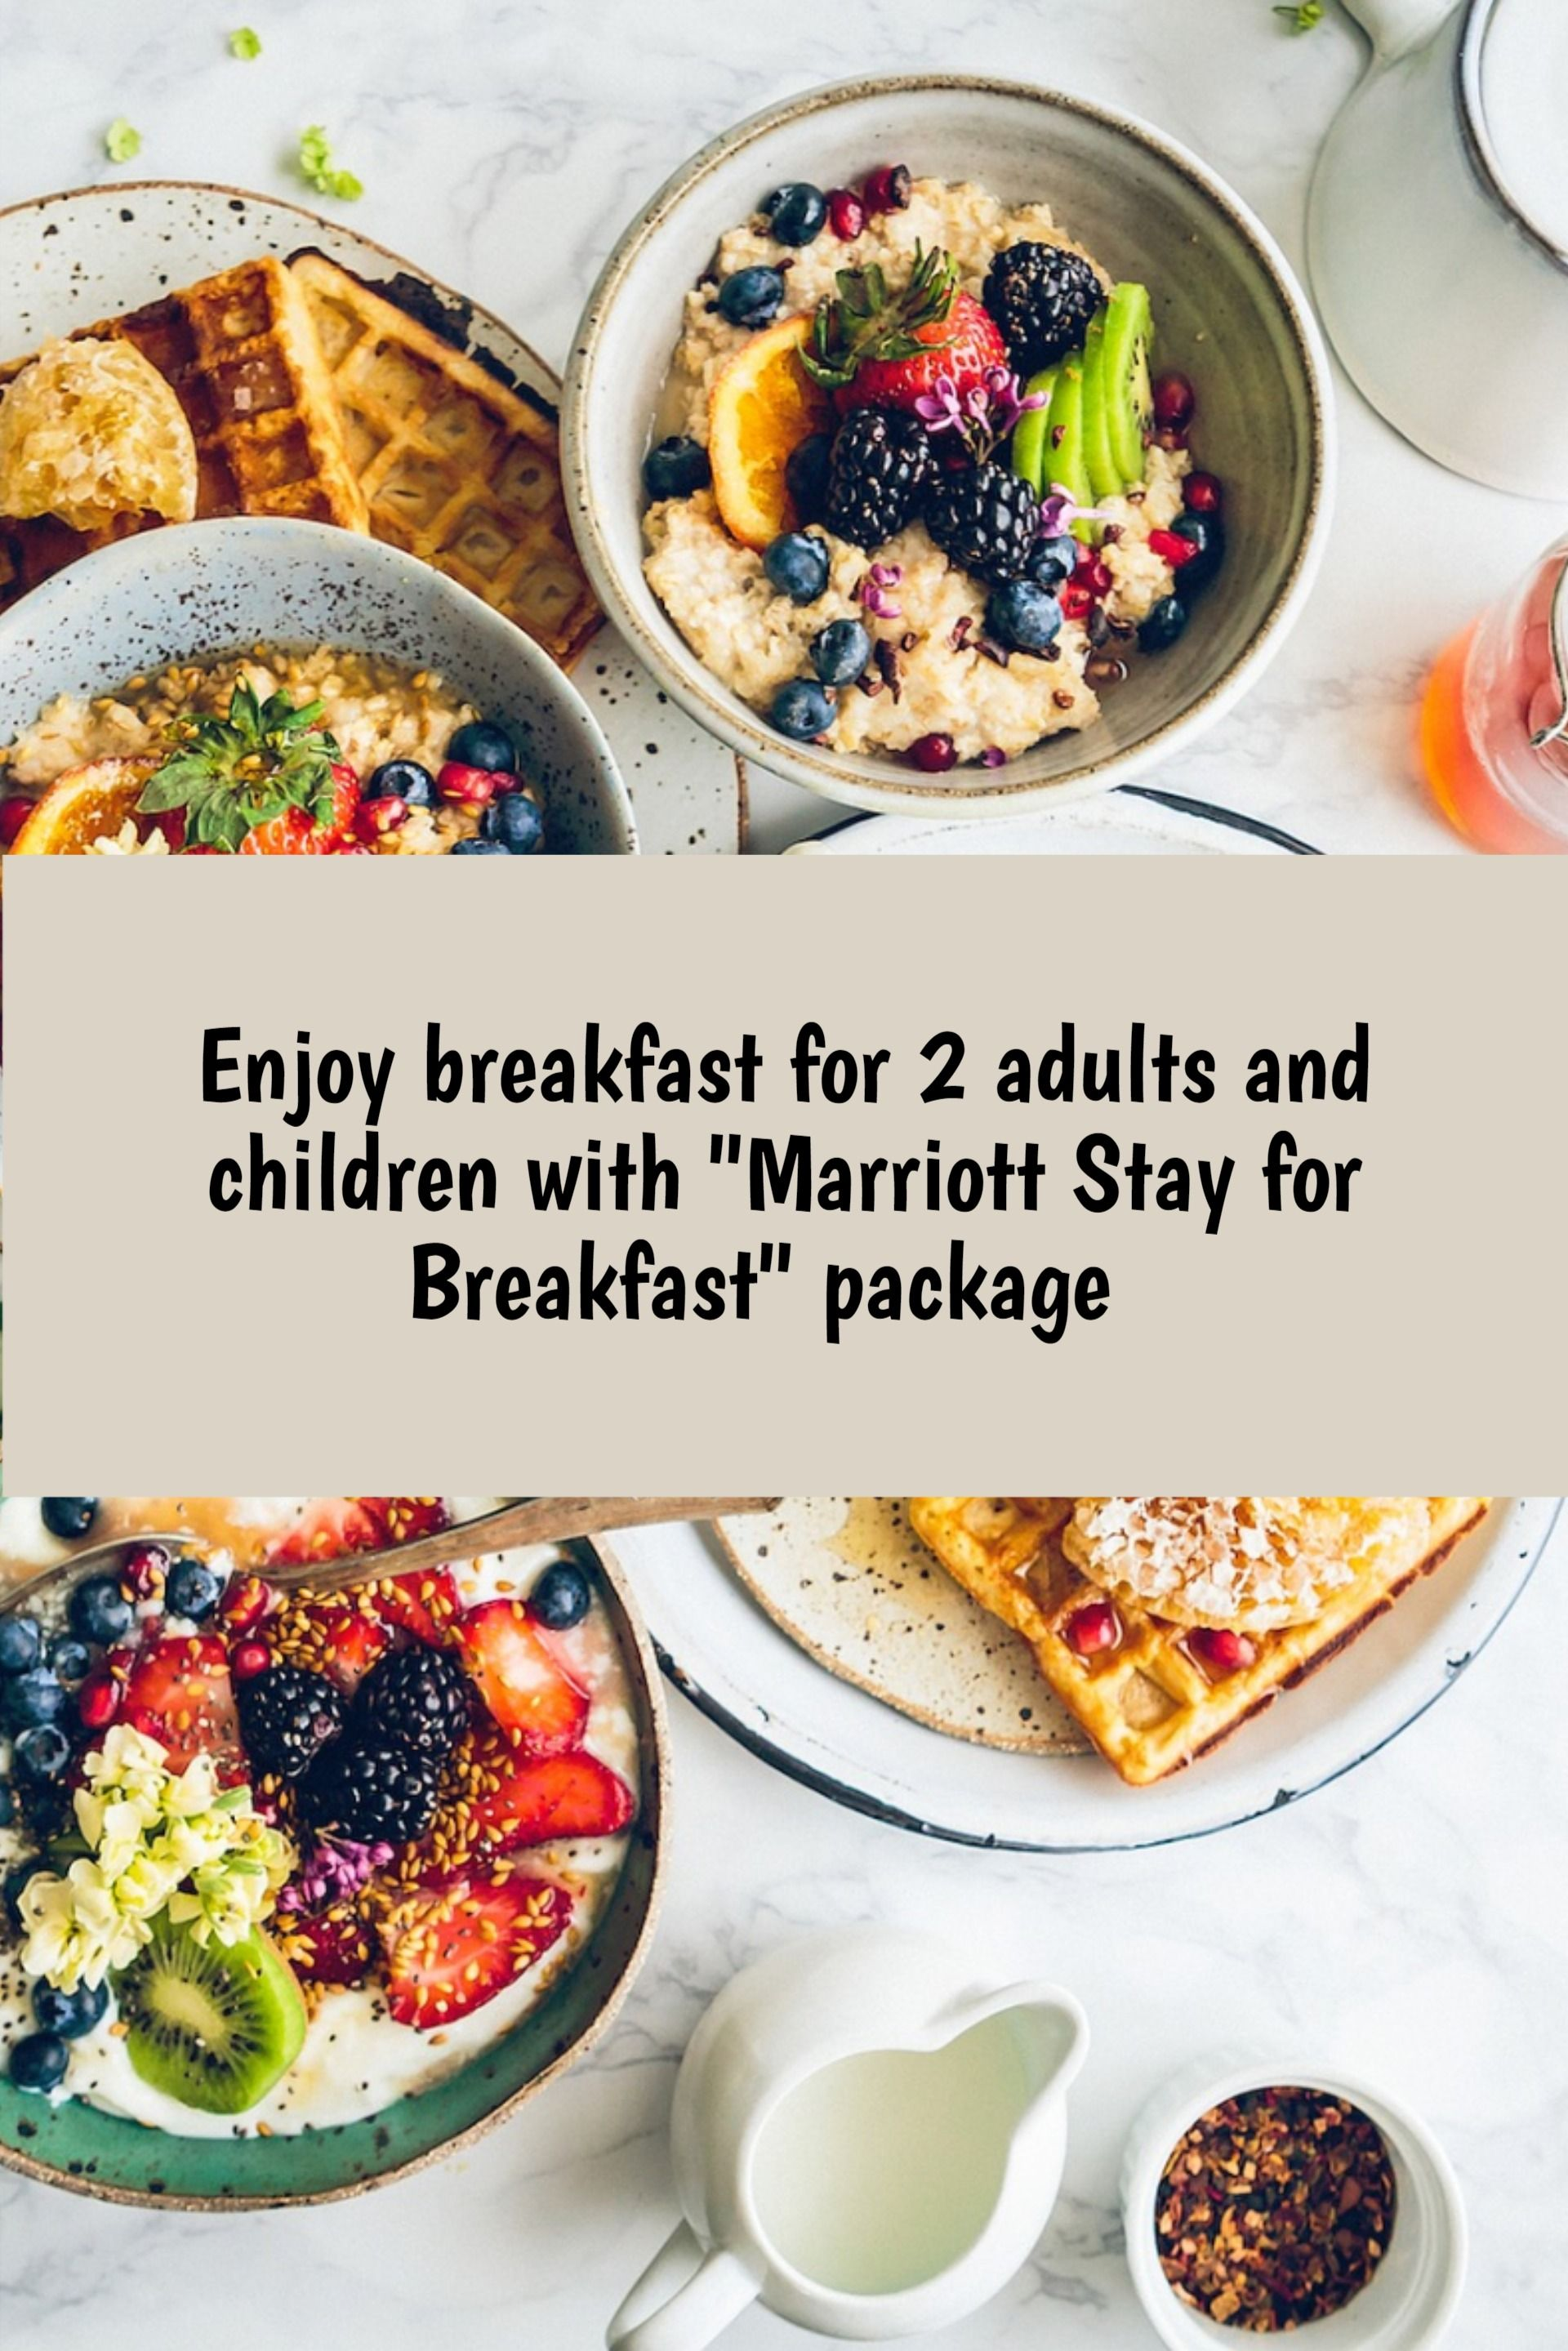 Enjoy breakfast for 2 adults and children when you book the